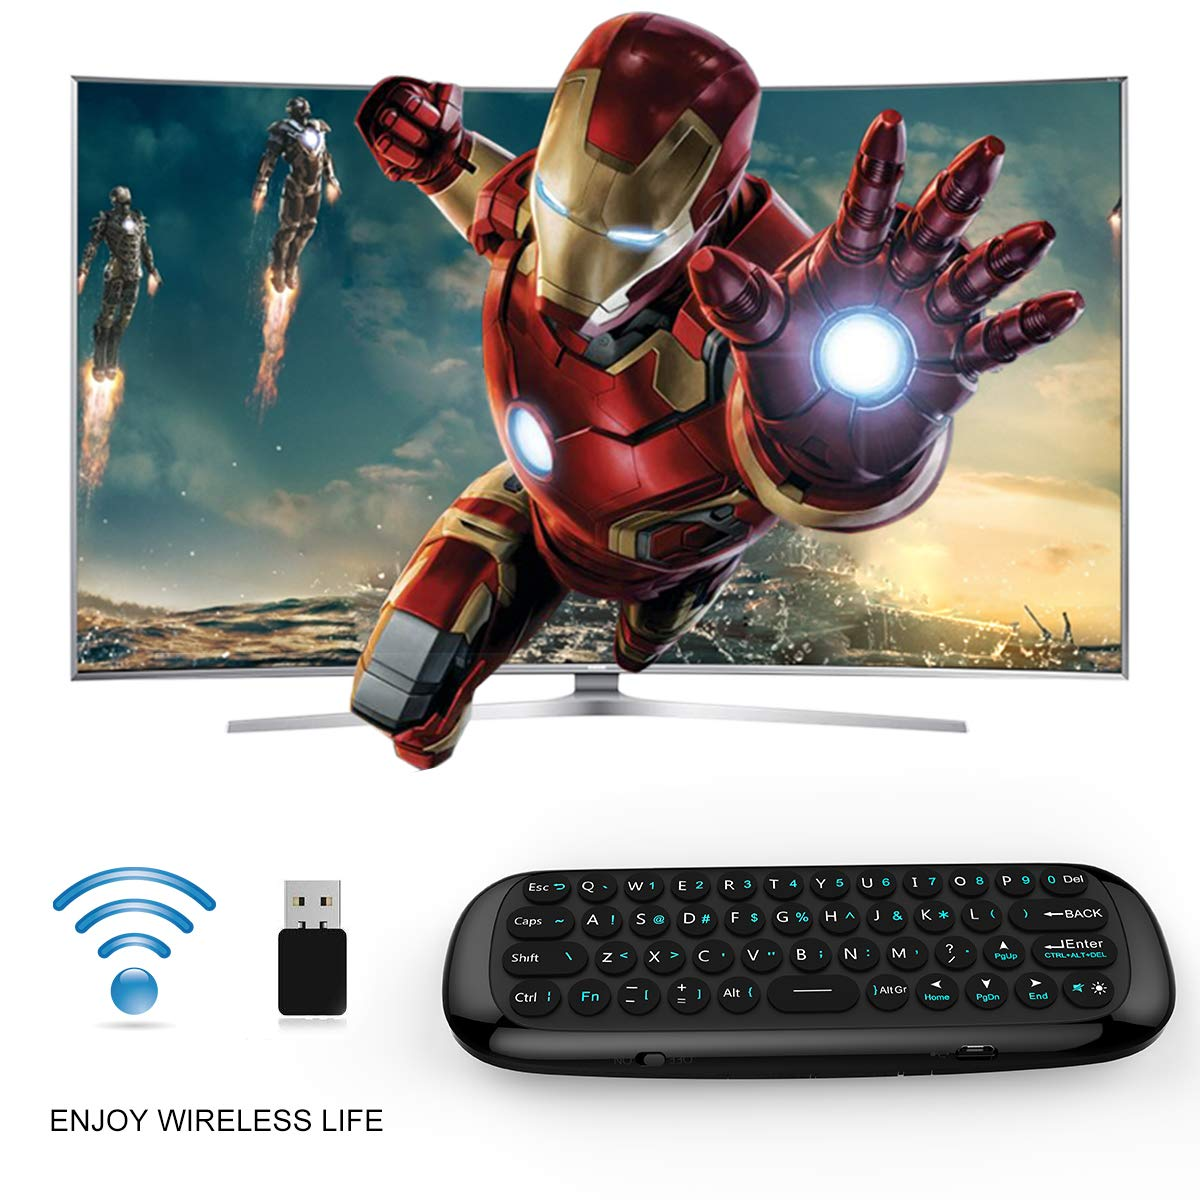 YAGALA Mini Air Mouse,W1 Wireless Keyboard 2.4G Fly Mouse Multifunctional Remote Control with IR Learning Function,Works for Android TV Box//PC//Smart TV//Projector//HTPC//All-in-one PC//TV